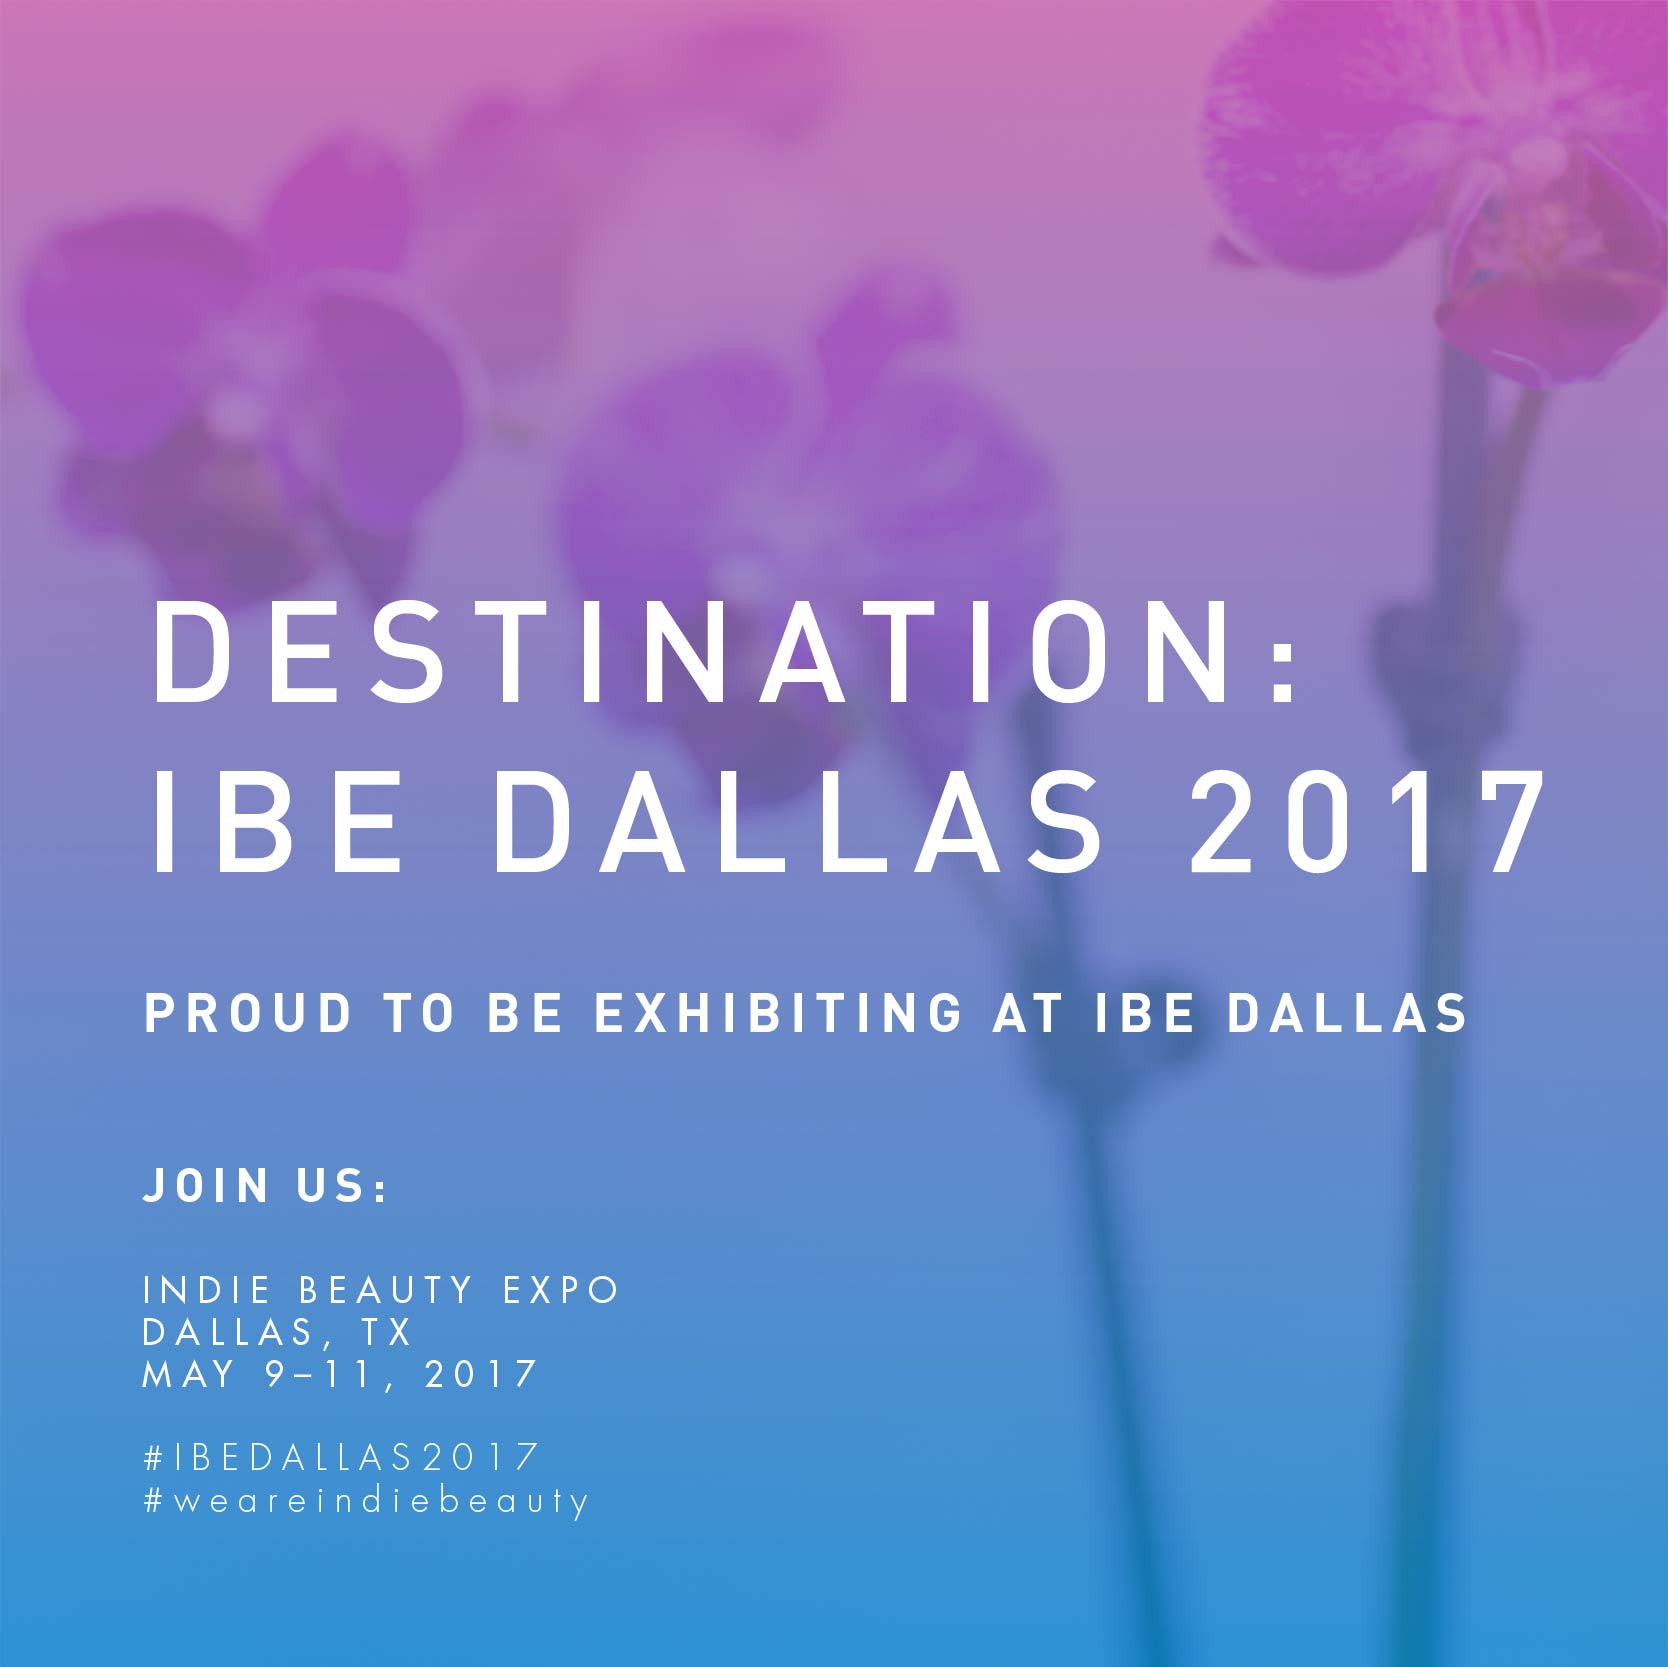 Indie Beauty Expo Dallas